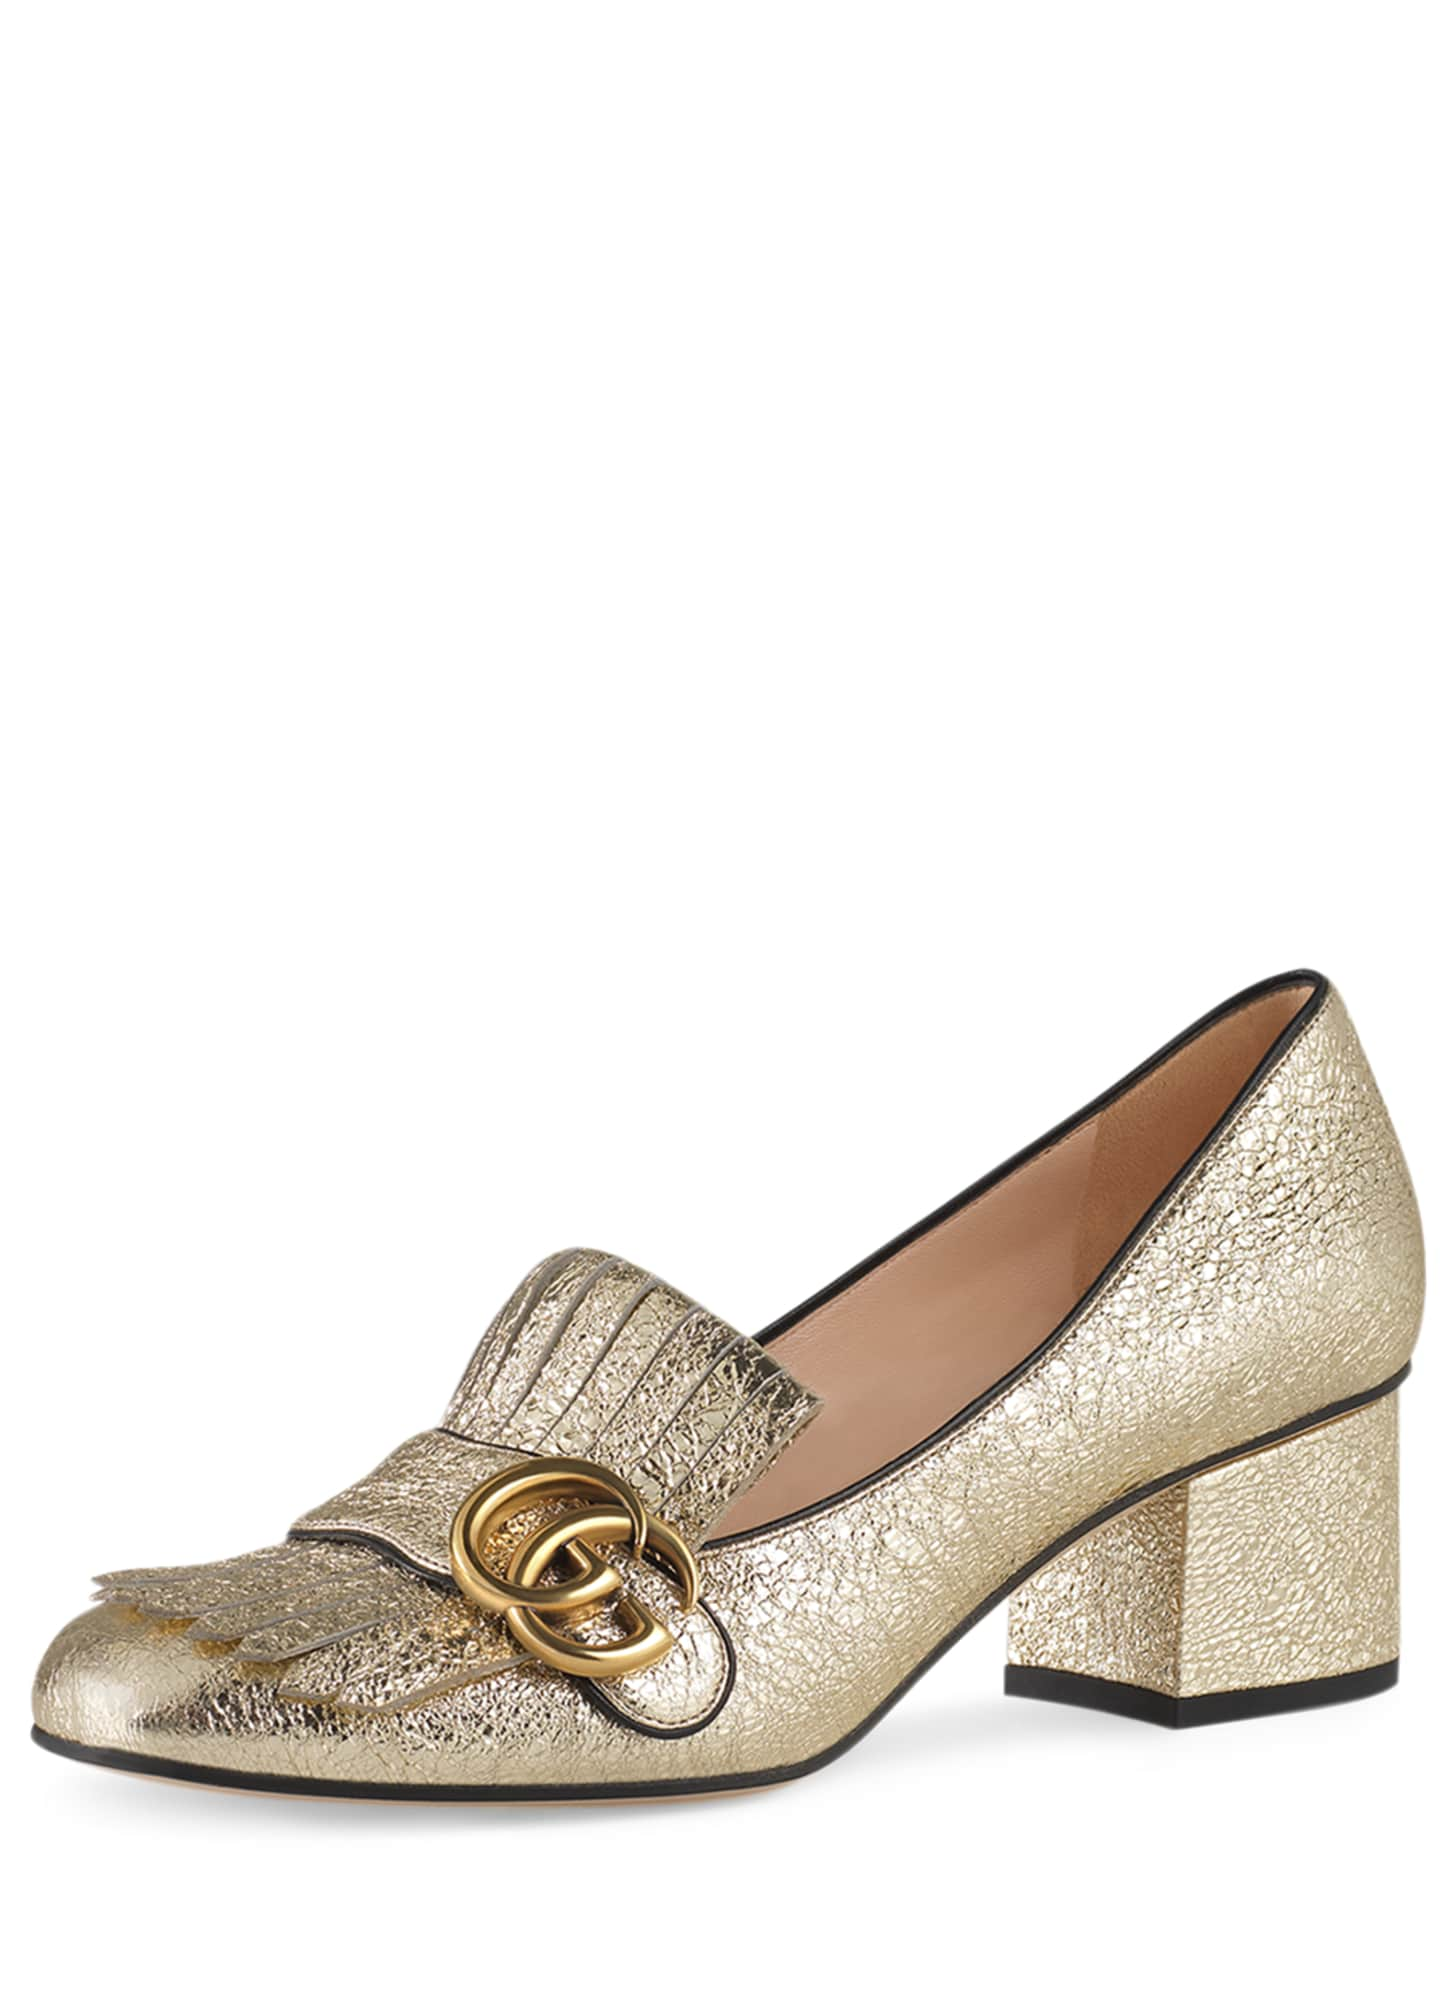 Gucci 55mm Marmont Metallic Loafer